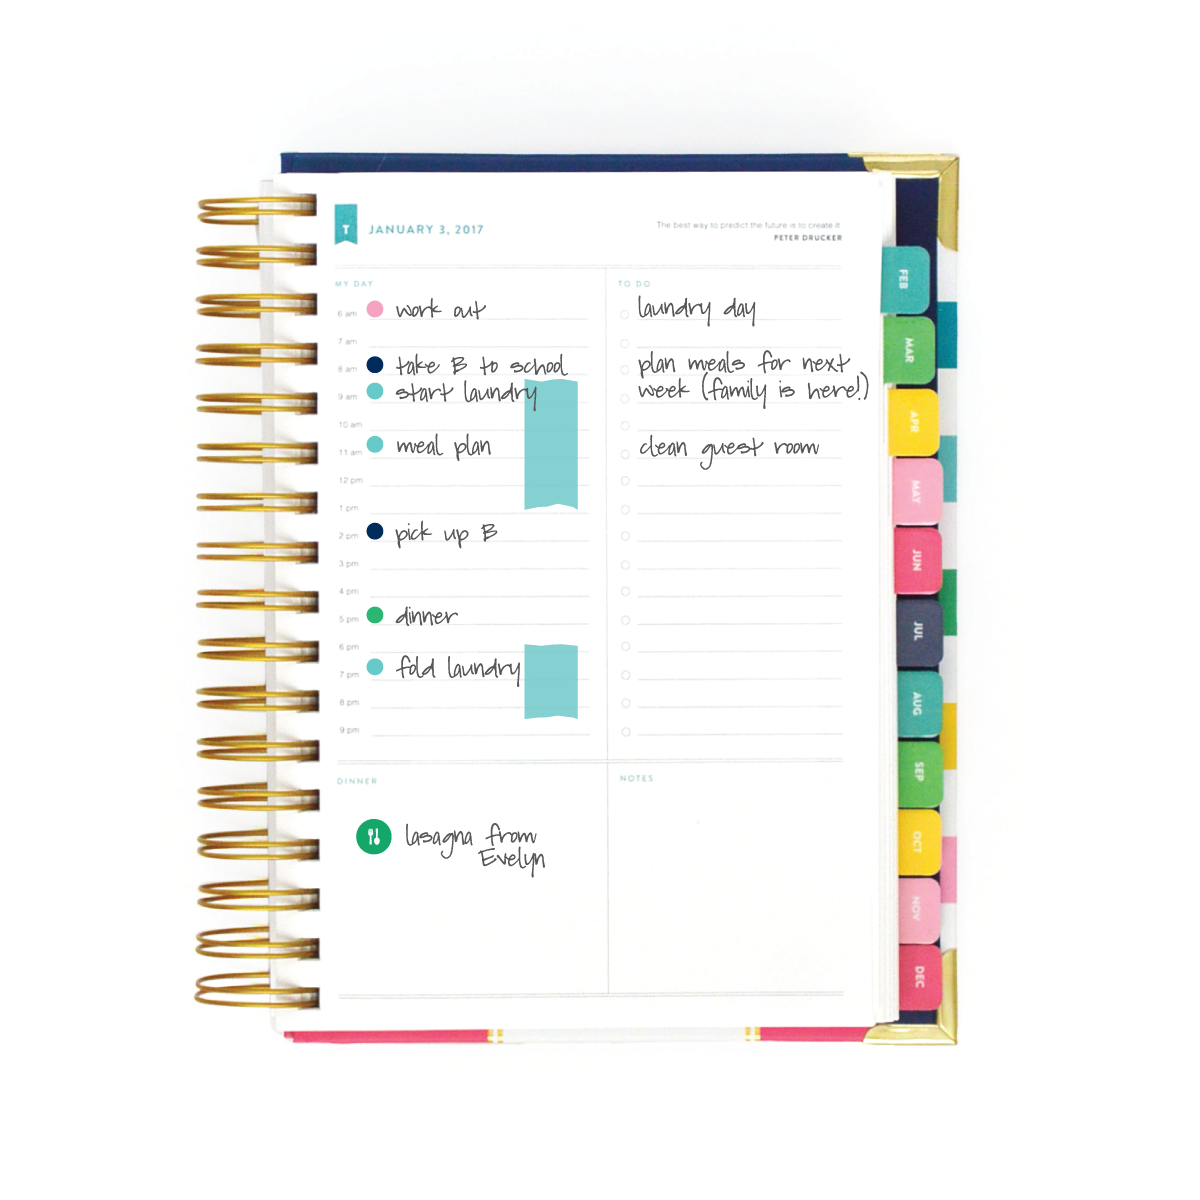 picture about Simplified Planner named Simplifying your Schedule with the Simplified Planner. Day by day